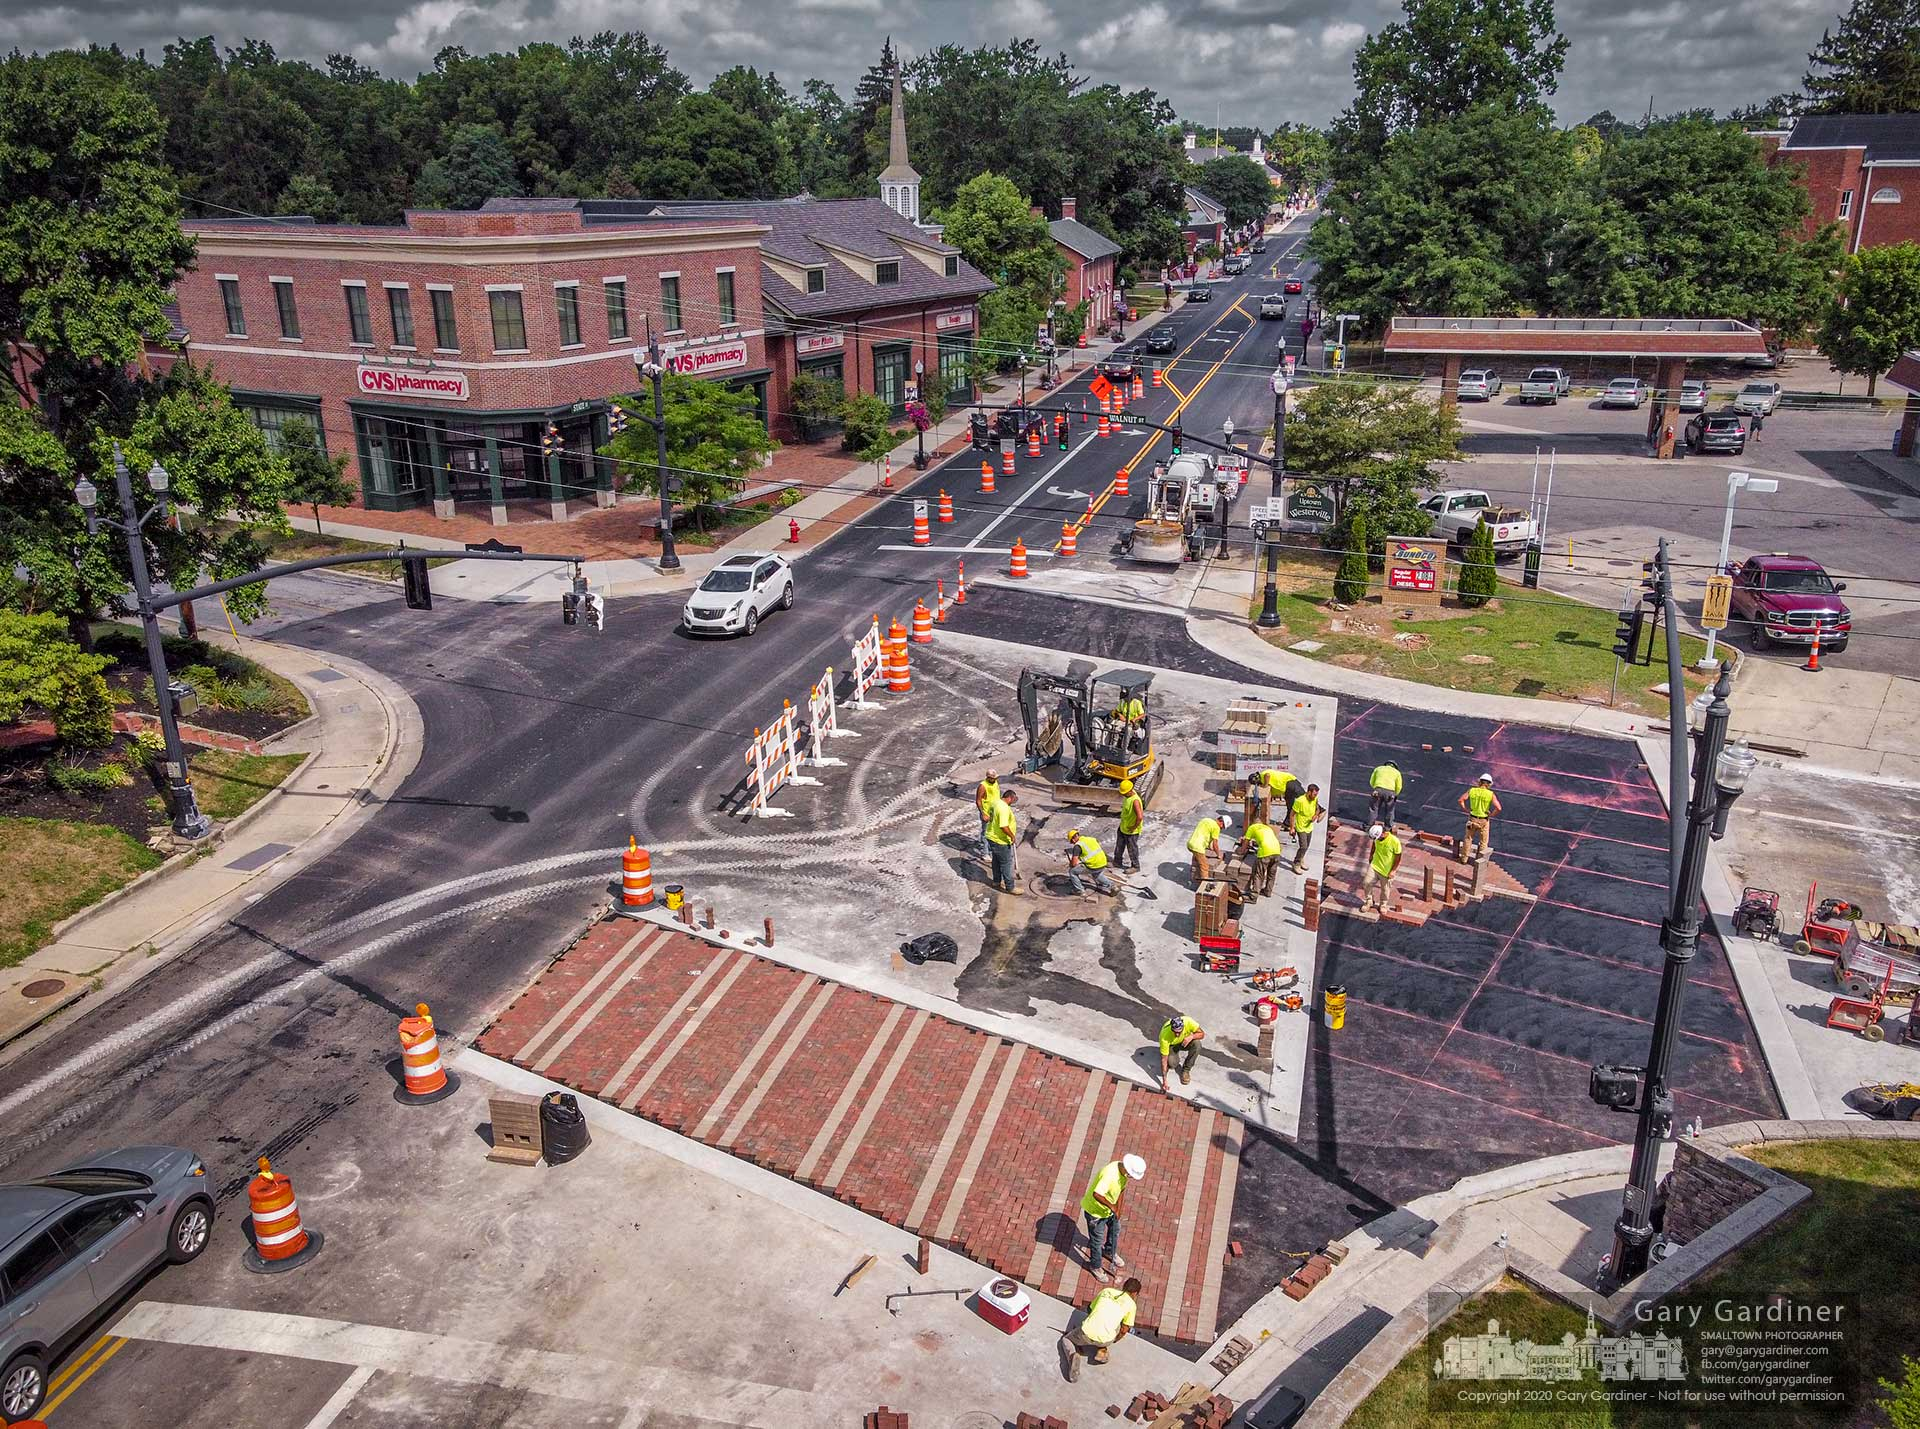 Bricklayers install high-grade pavers on a section of the new crosswalks at State and Walnut Street in Uptown Westerville. My Final Photo for July 27, 2020.